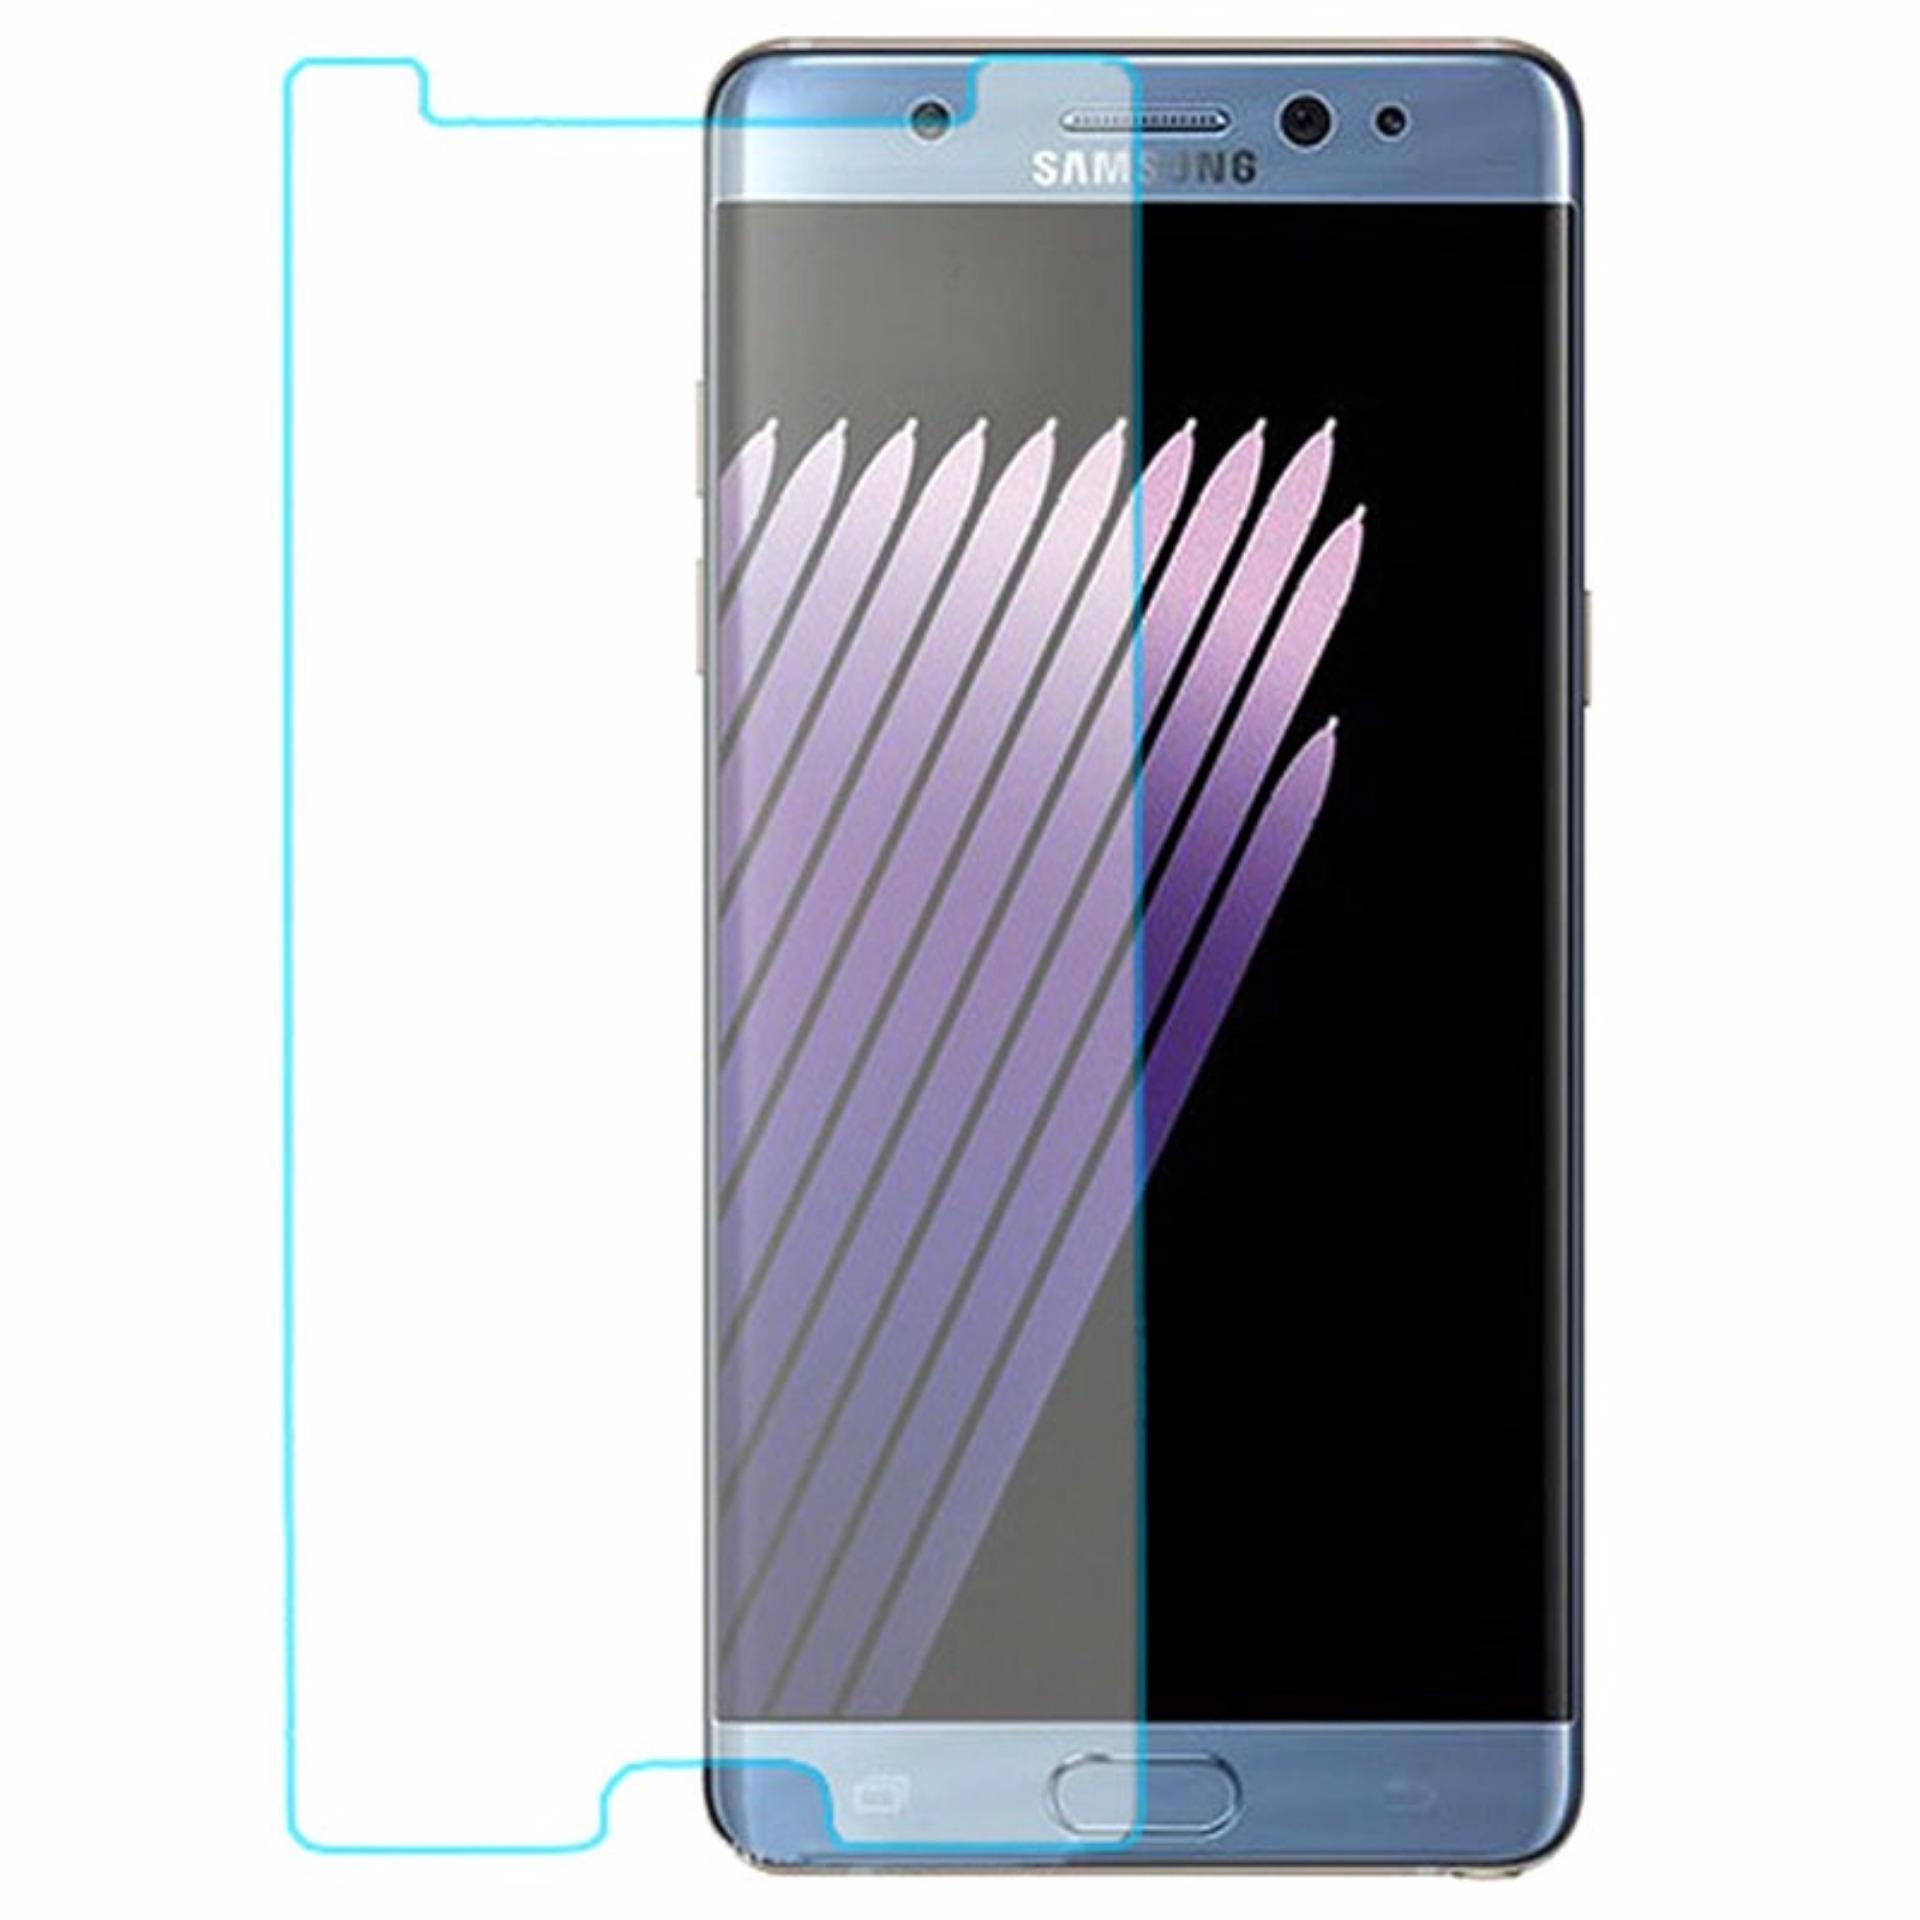 Vn Samsung Galaxy Note FE / N935 / LTE / Duos Tempered Glass 9H Screen Protector